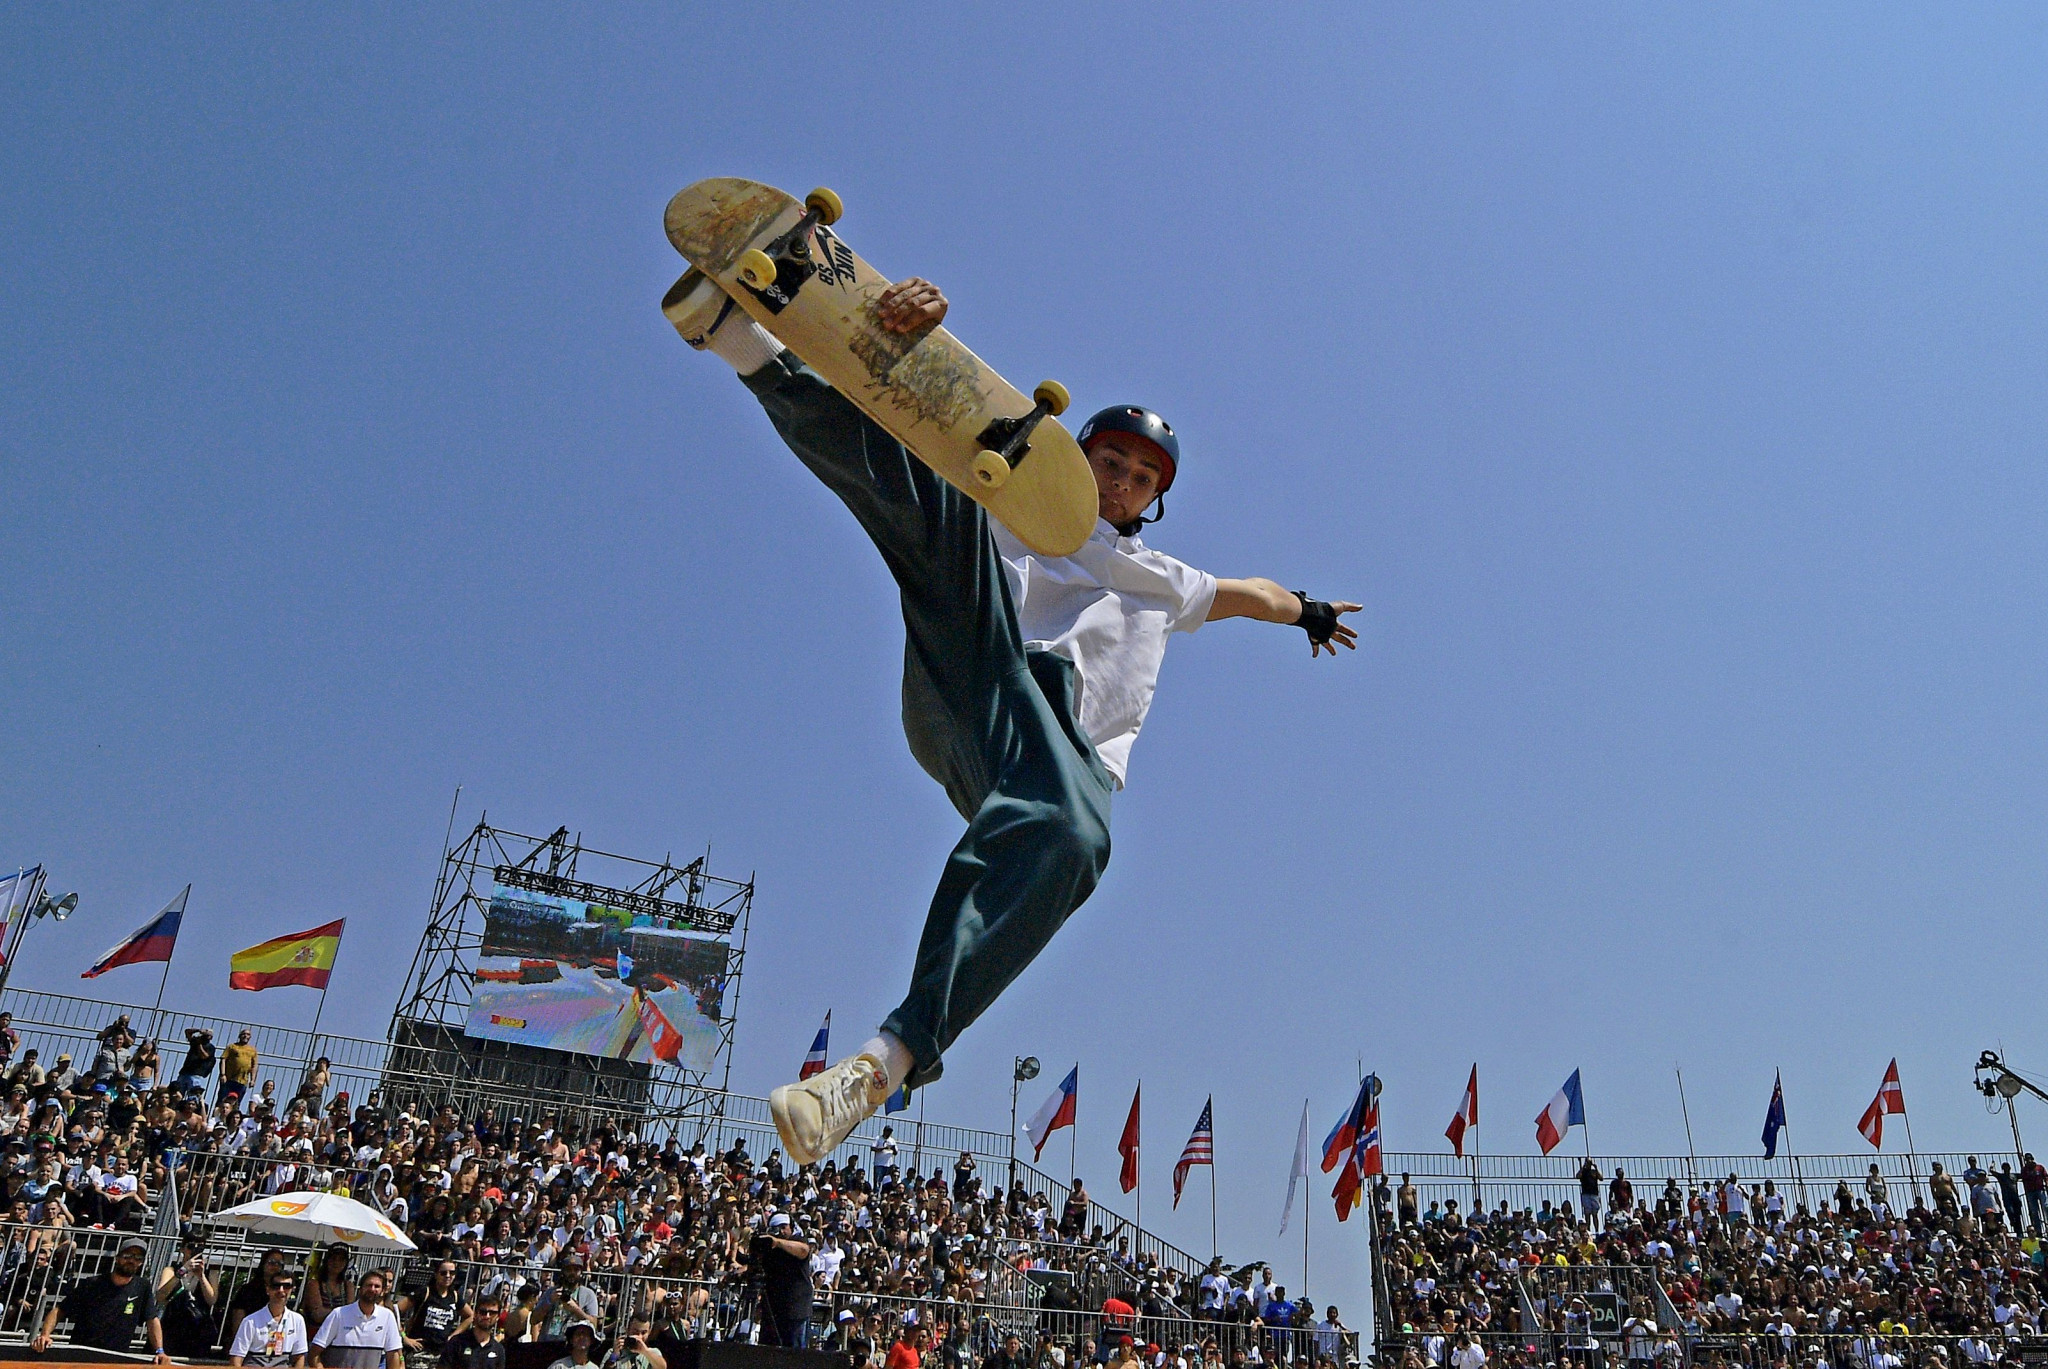 Skateboarding is due to make its Olympic debut at the postponed Tokyo 2020 Games ©Getty Images